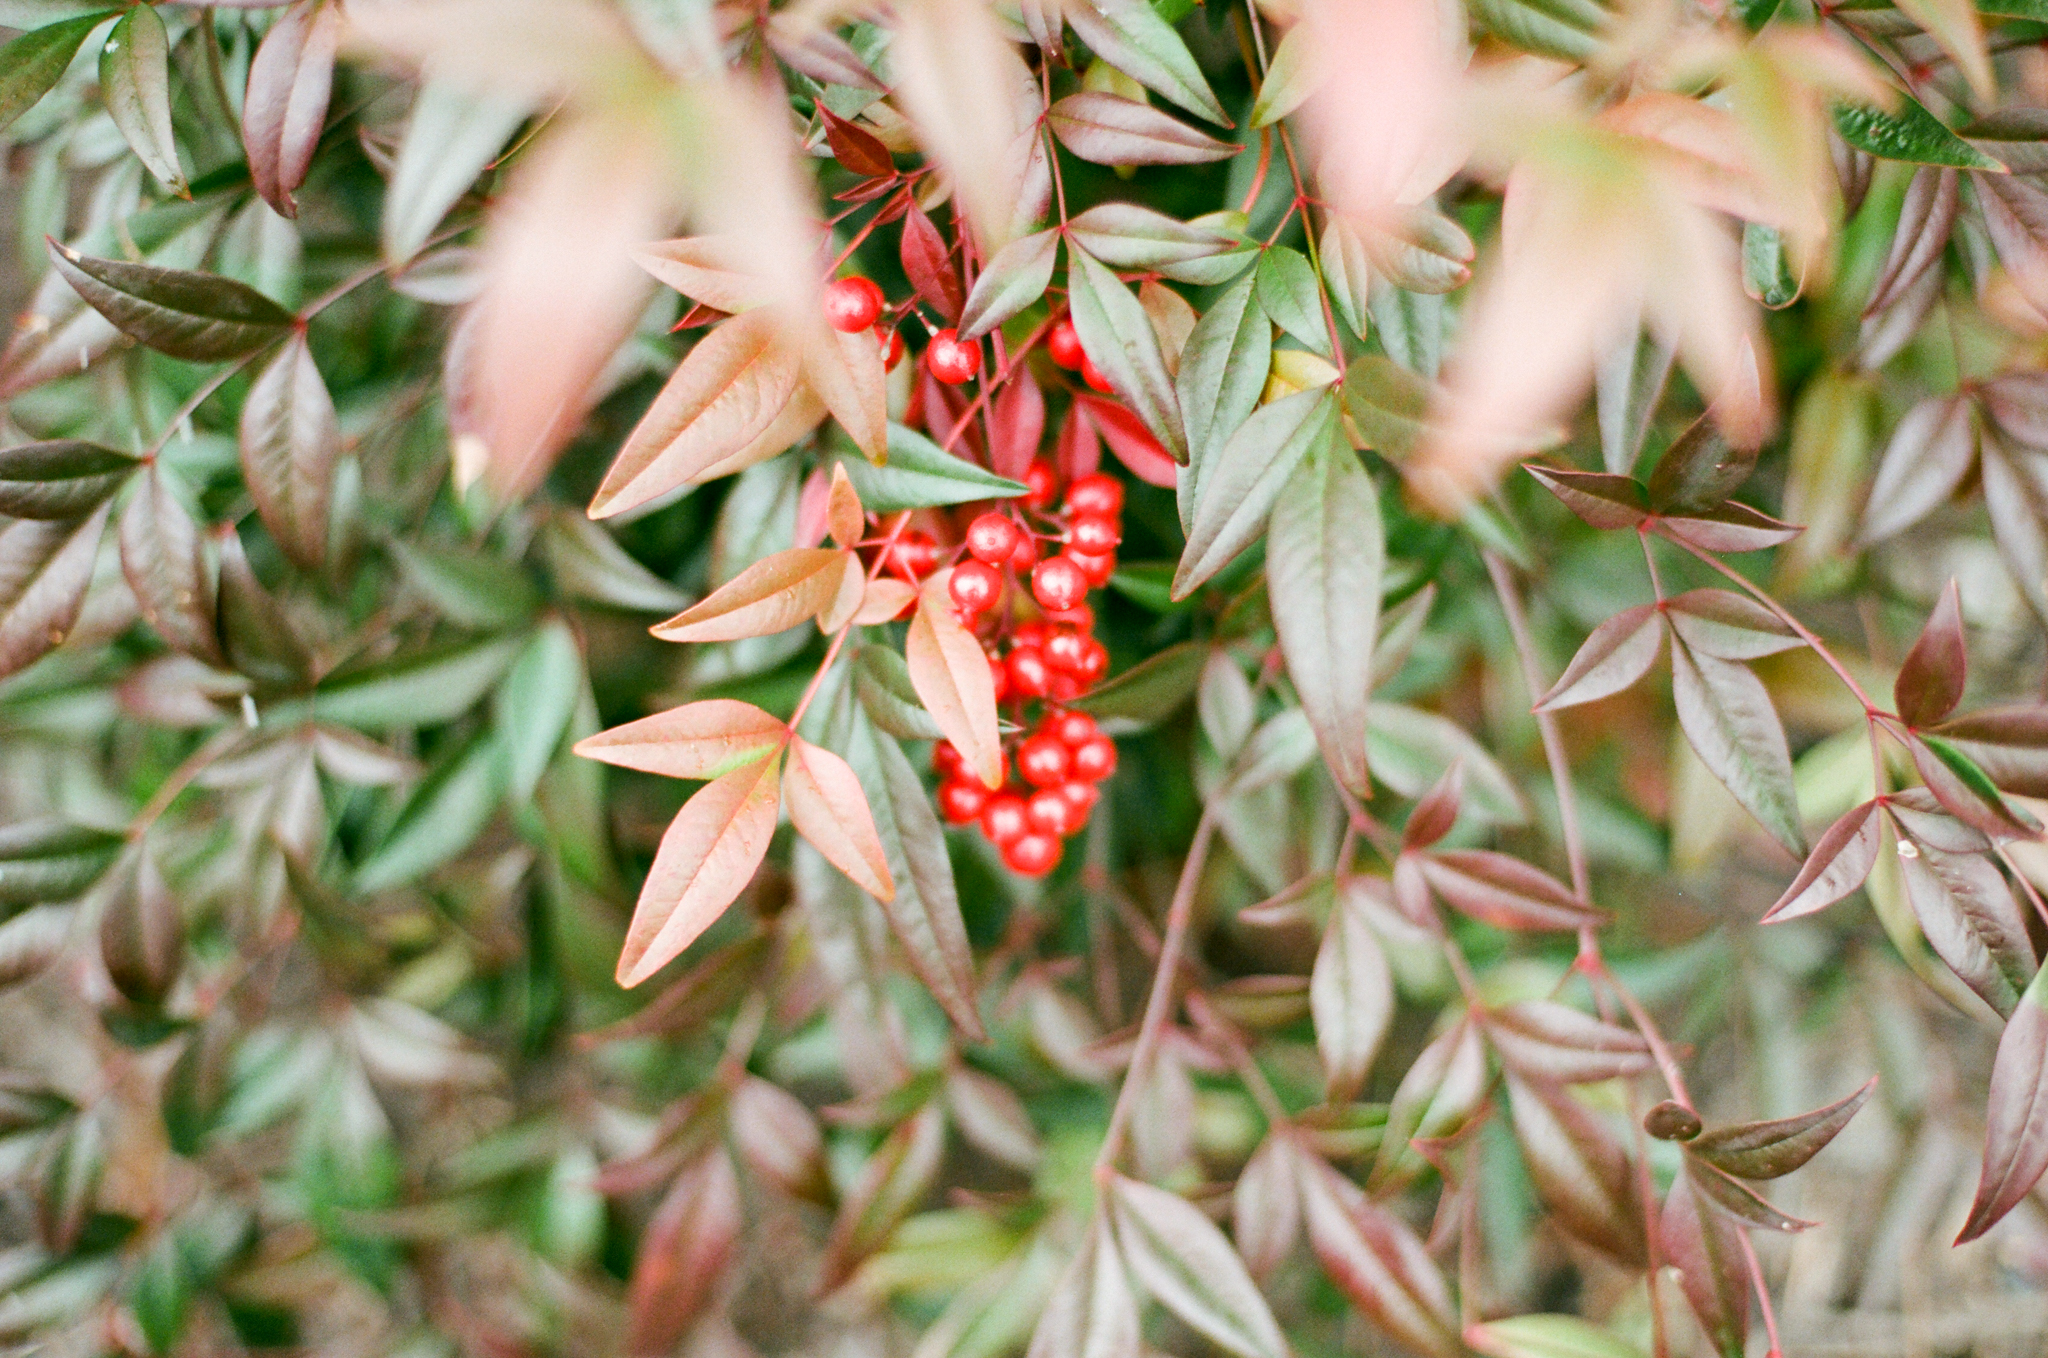 Because when you have a film camera in your hands and you see a green bush with pretty red berries on it, you have to photograph it!